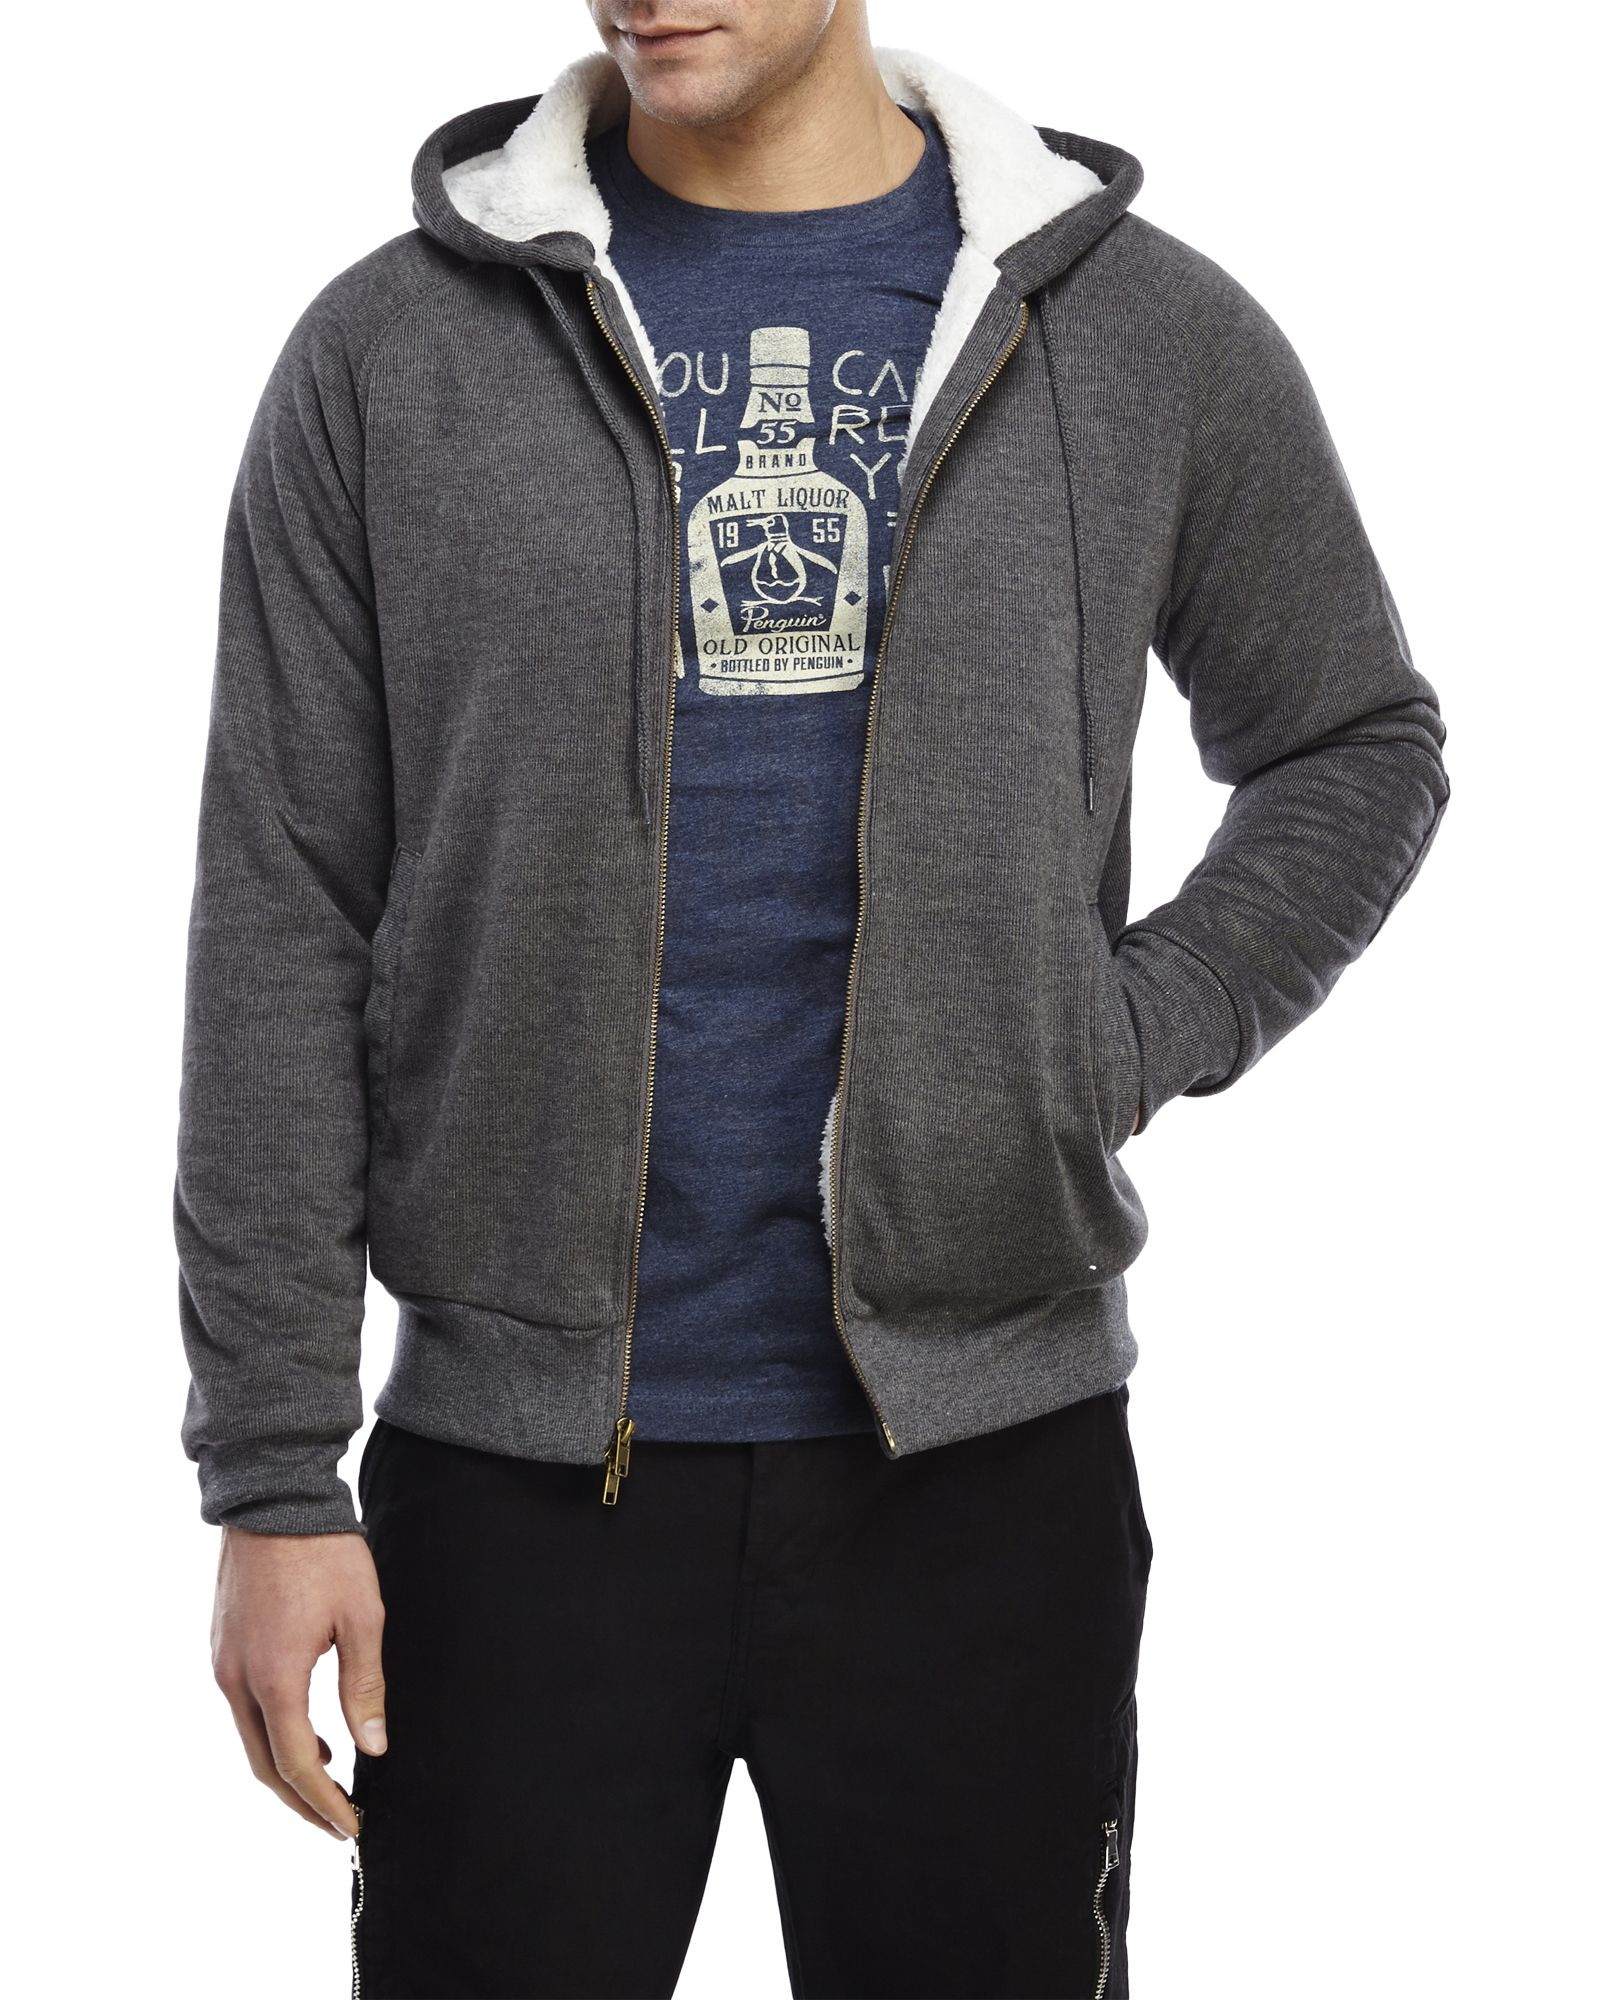 Natural Blue By Visitor Grey Sherpa Lined Zip Front Hoodie